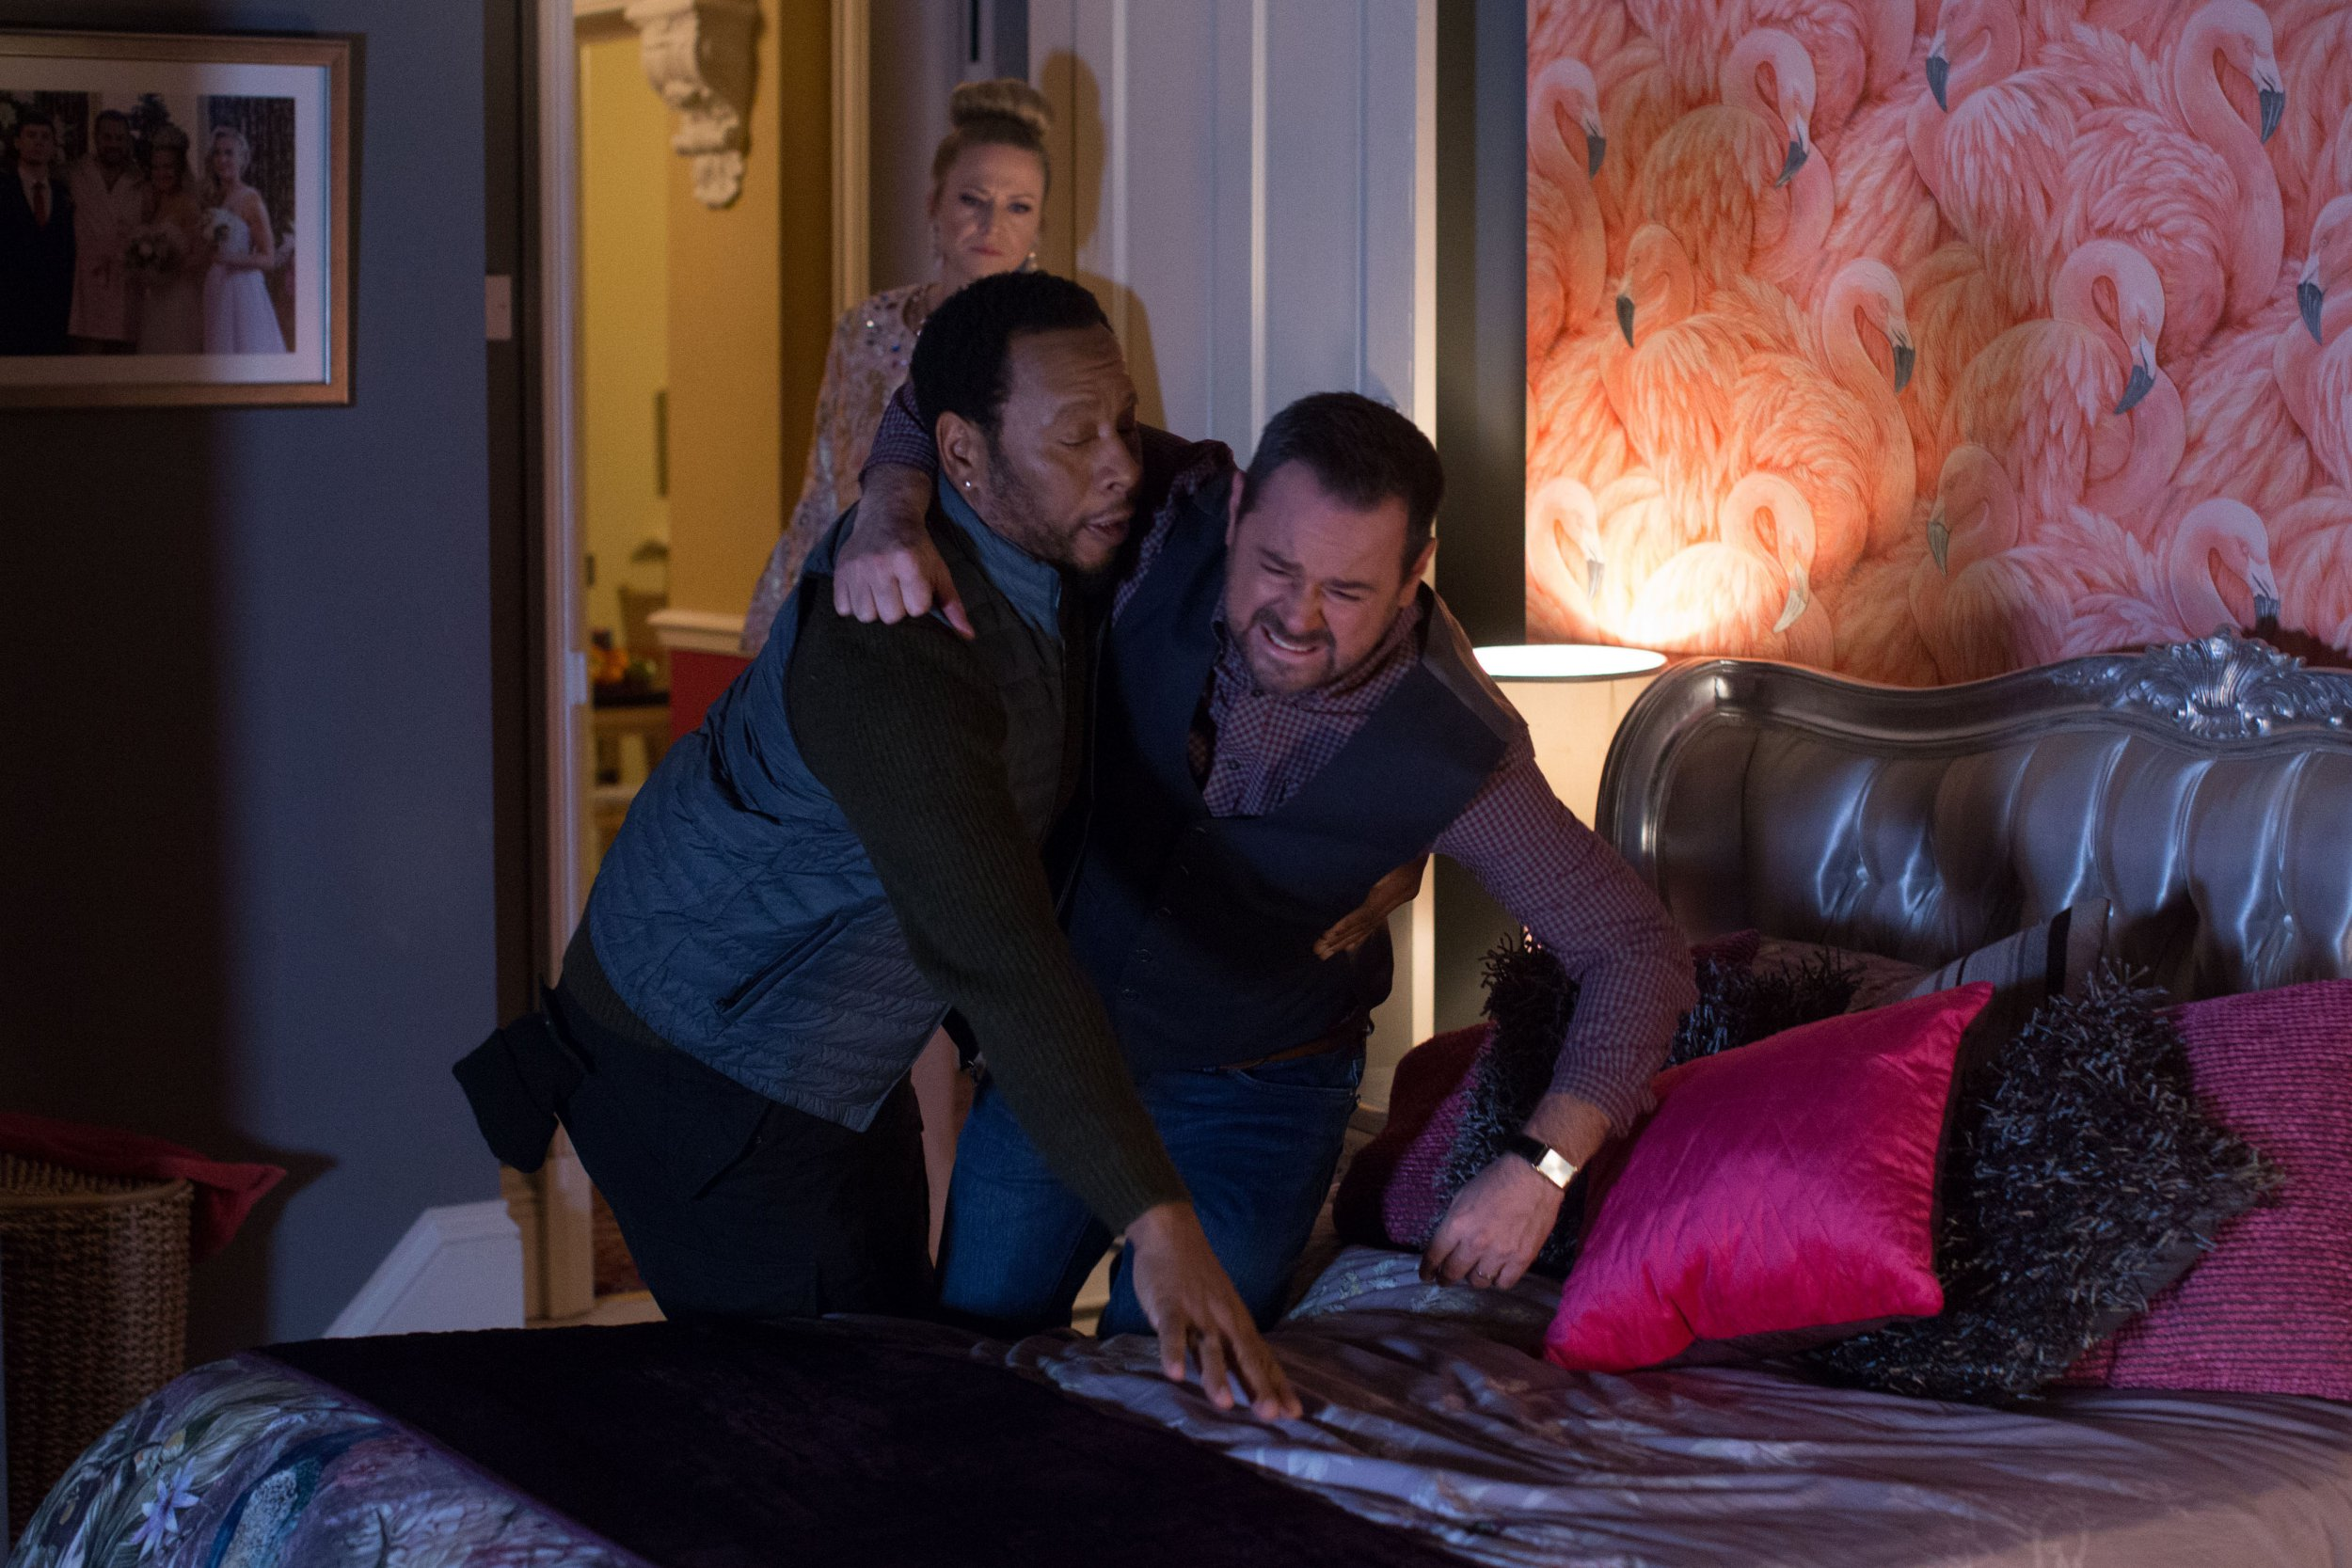 WARNING: Embargoed for publication until 00:00:01 on 22/01/2019 - Programme Name: EastEnders - January - March 2019 - TX: 29/01/2019 - Episode: EastEnders - January - March - 2019 - 5859 (No. 5859) - Picture Shows: *STRICTLY NOT FOR PUBLICATION UNTIL 00:01HRS TUESDAY 22nd JANUARY 2019* Mitch helps an injured Mick to bed Mitch Baker (ROGER GRIFFITHS), Linda Carter (KELLIE BRIGHT), Mick Carter (DANNY DYER) - (C) BBC - Photographer: Jack Barnes